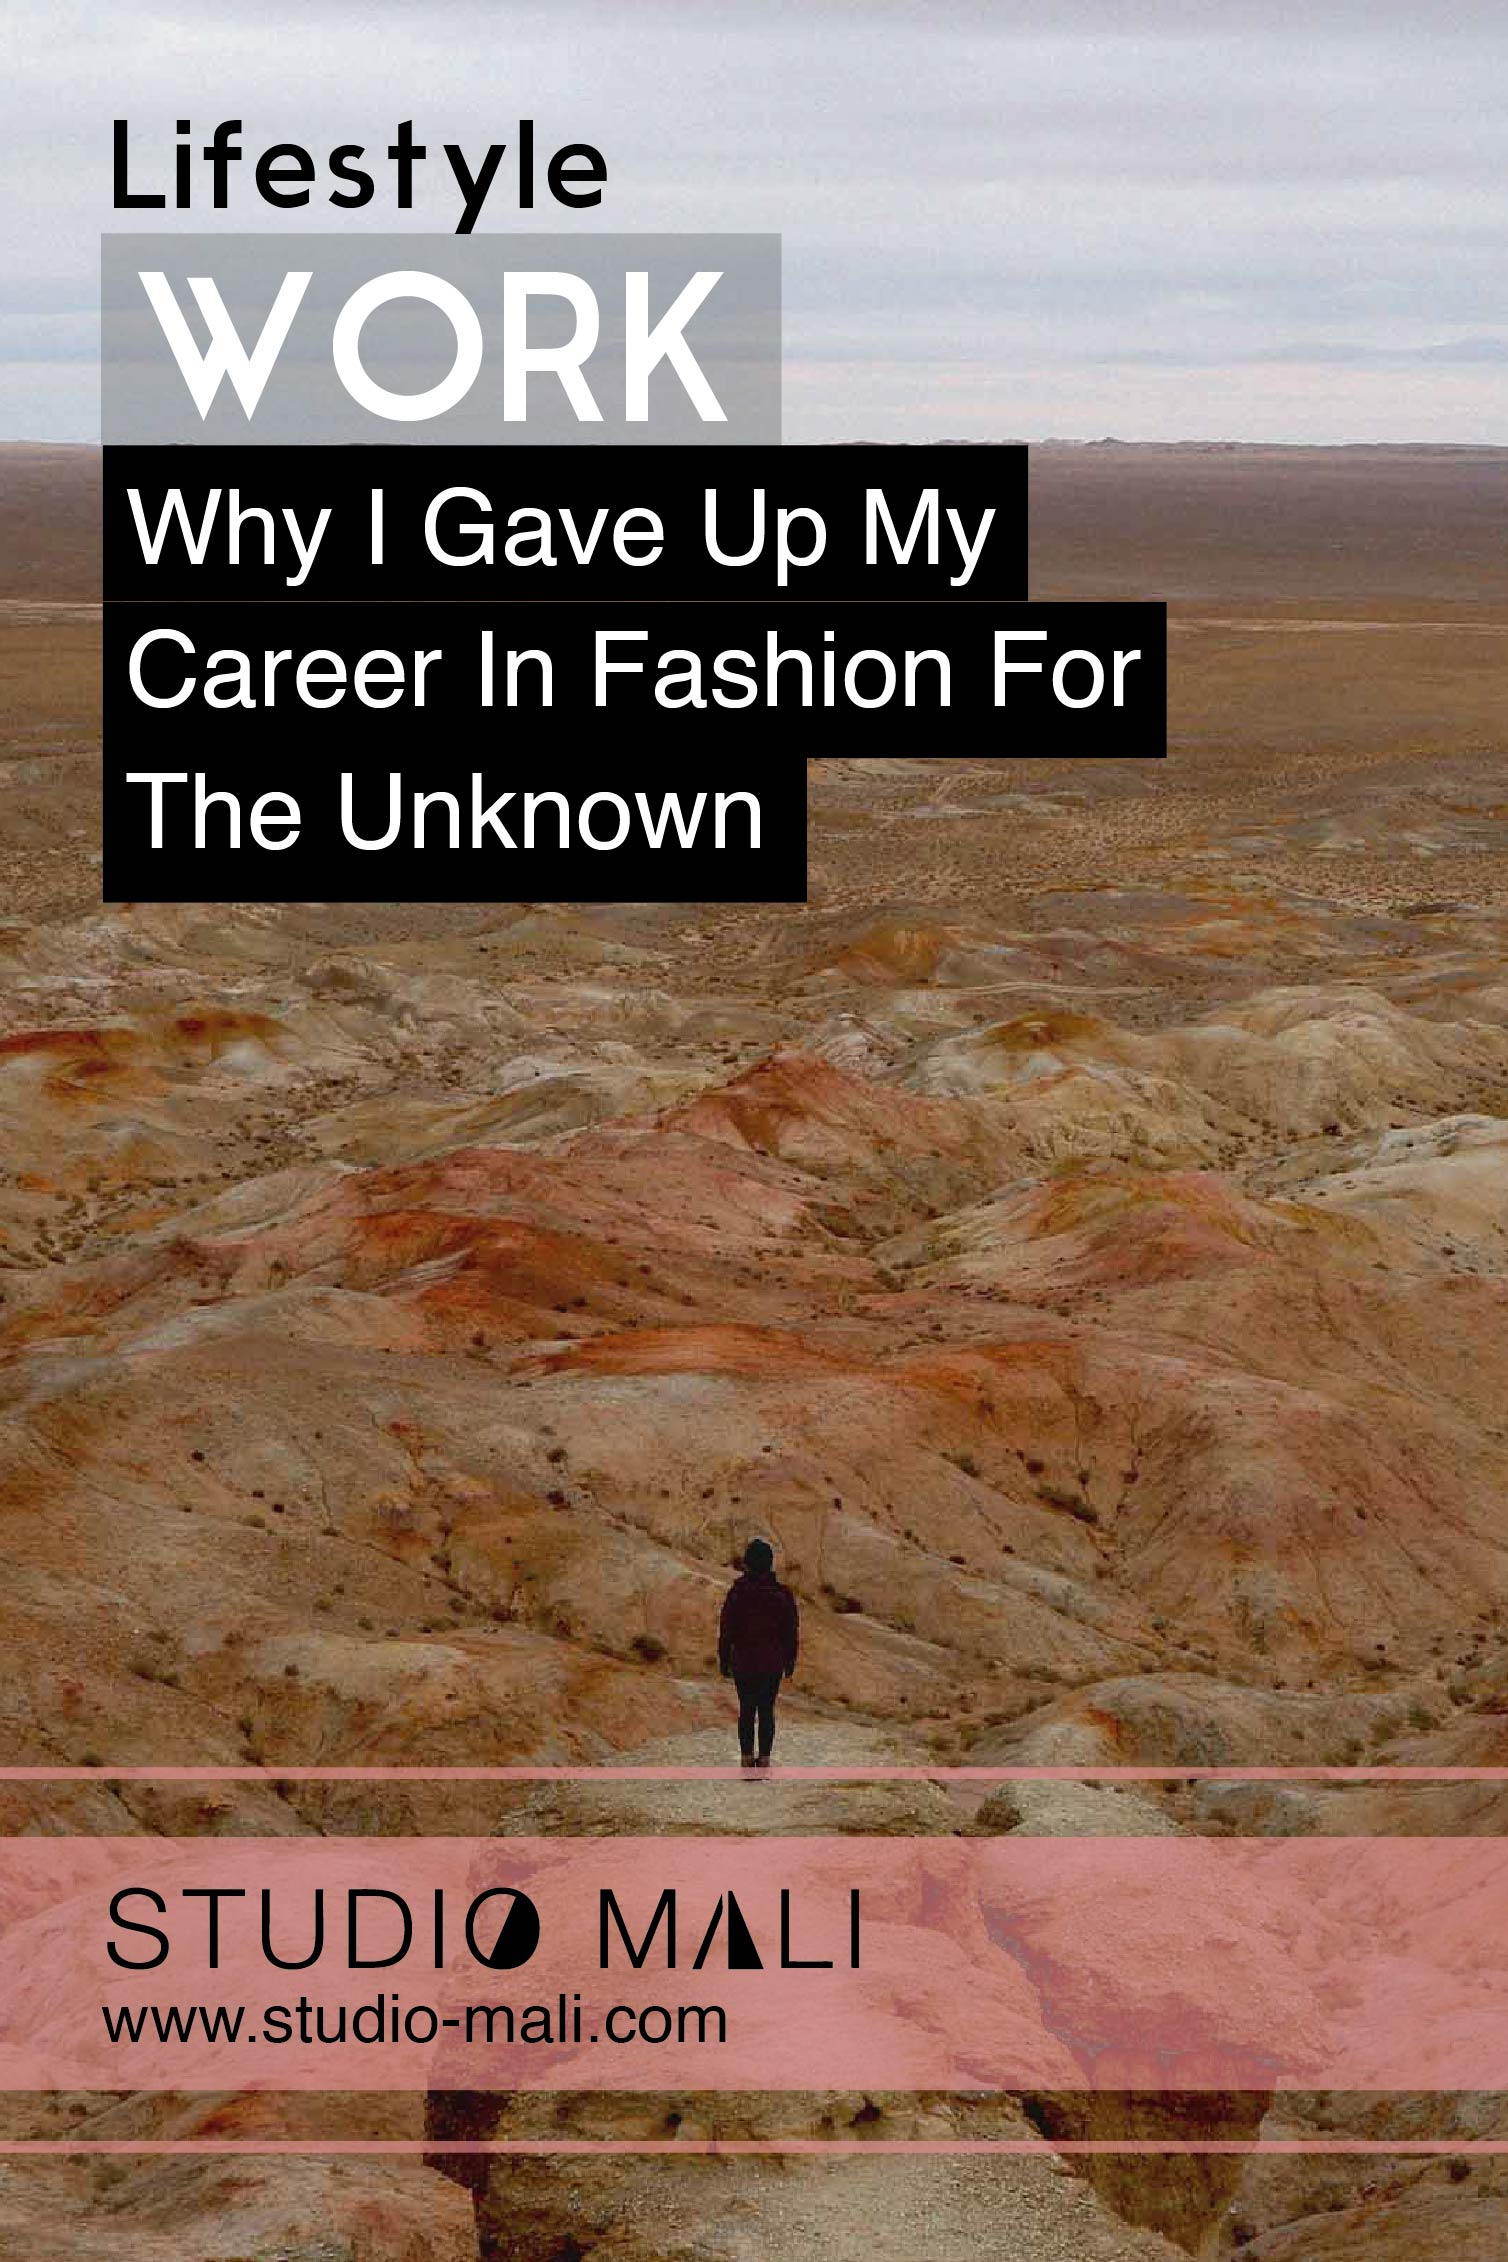 Lifestyle: Why I Gave Up My Career In Fashion For The Unknown, By Studio Mali